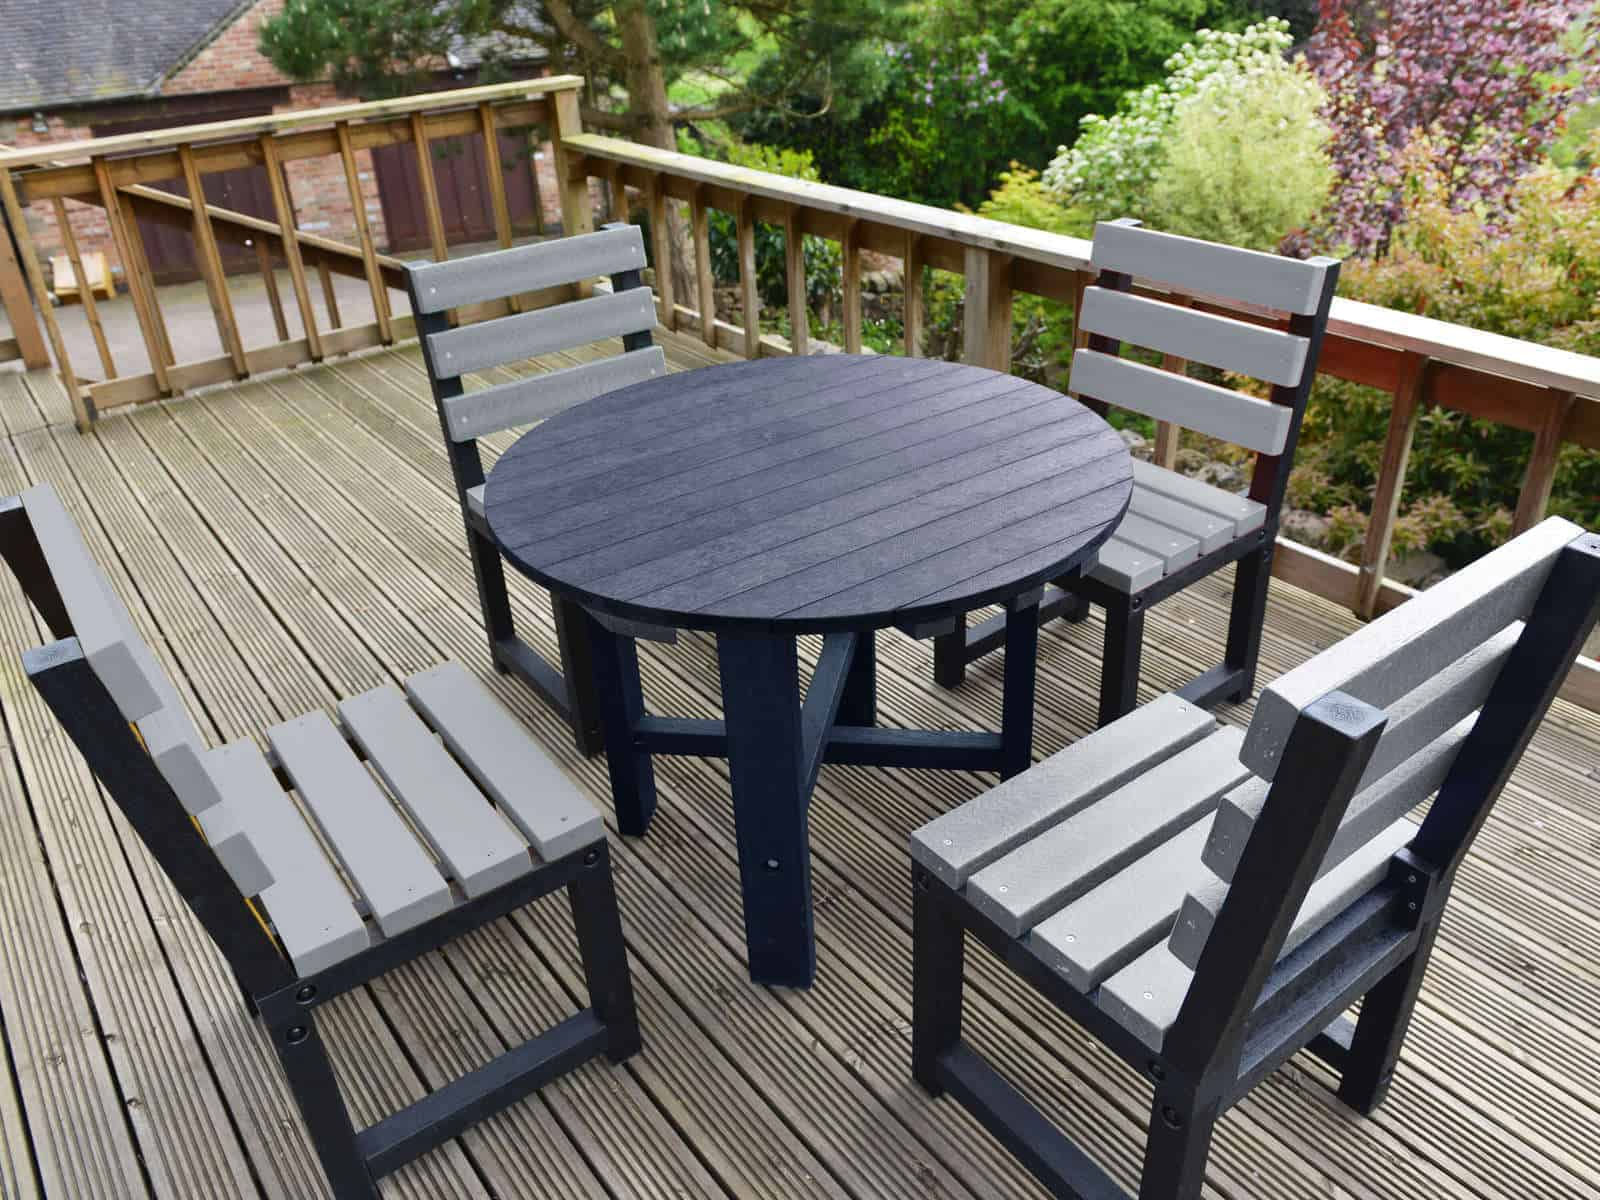 Outdoor Table And Chair Set Urban Cromford Lees Garden Dining Set